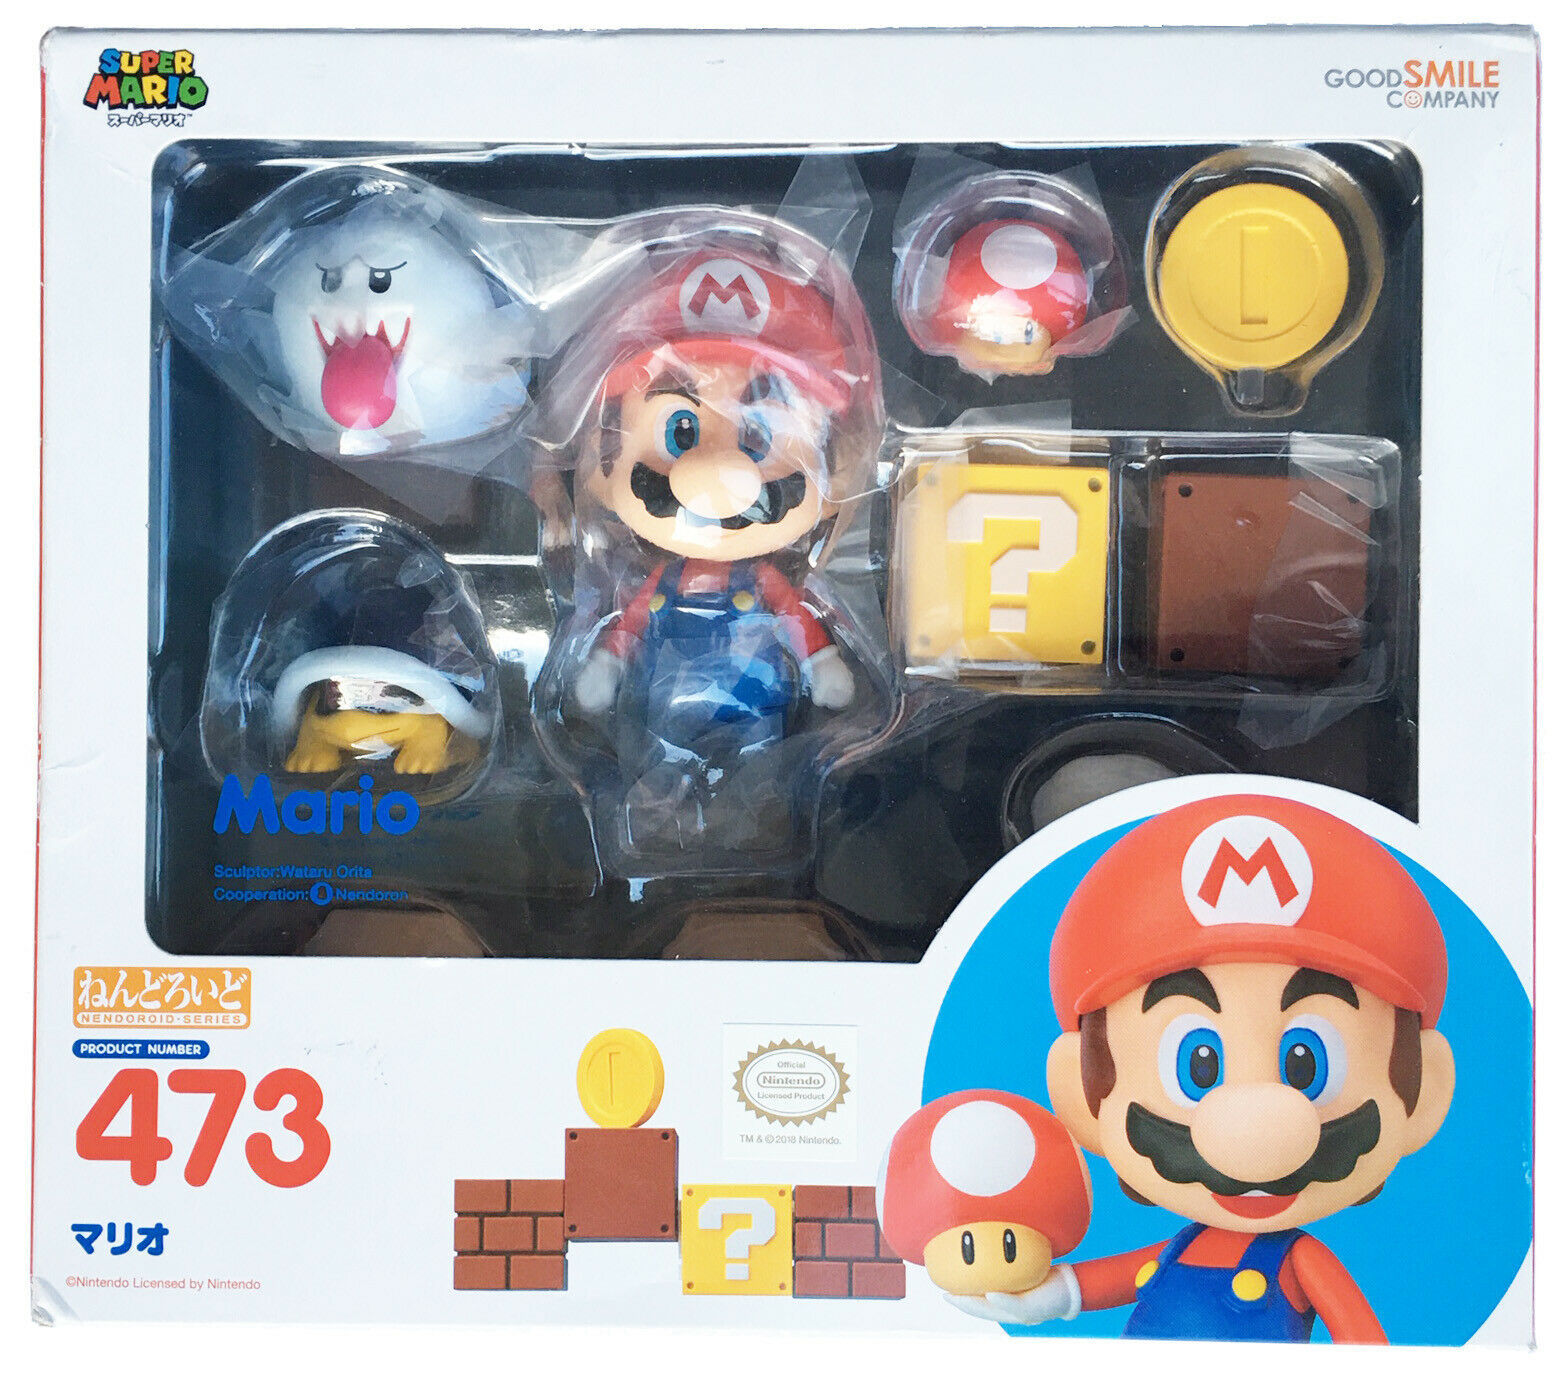 Super Mario 6 Inch Classic Skin Action Figure Nendoroid Series 473 Good Smile Co